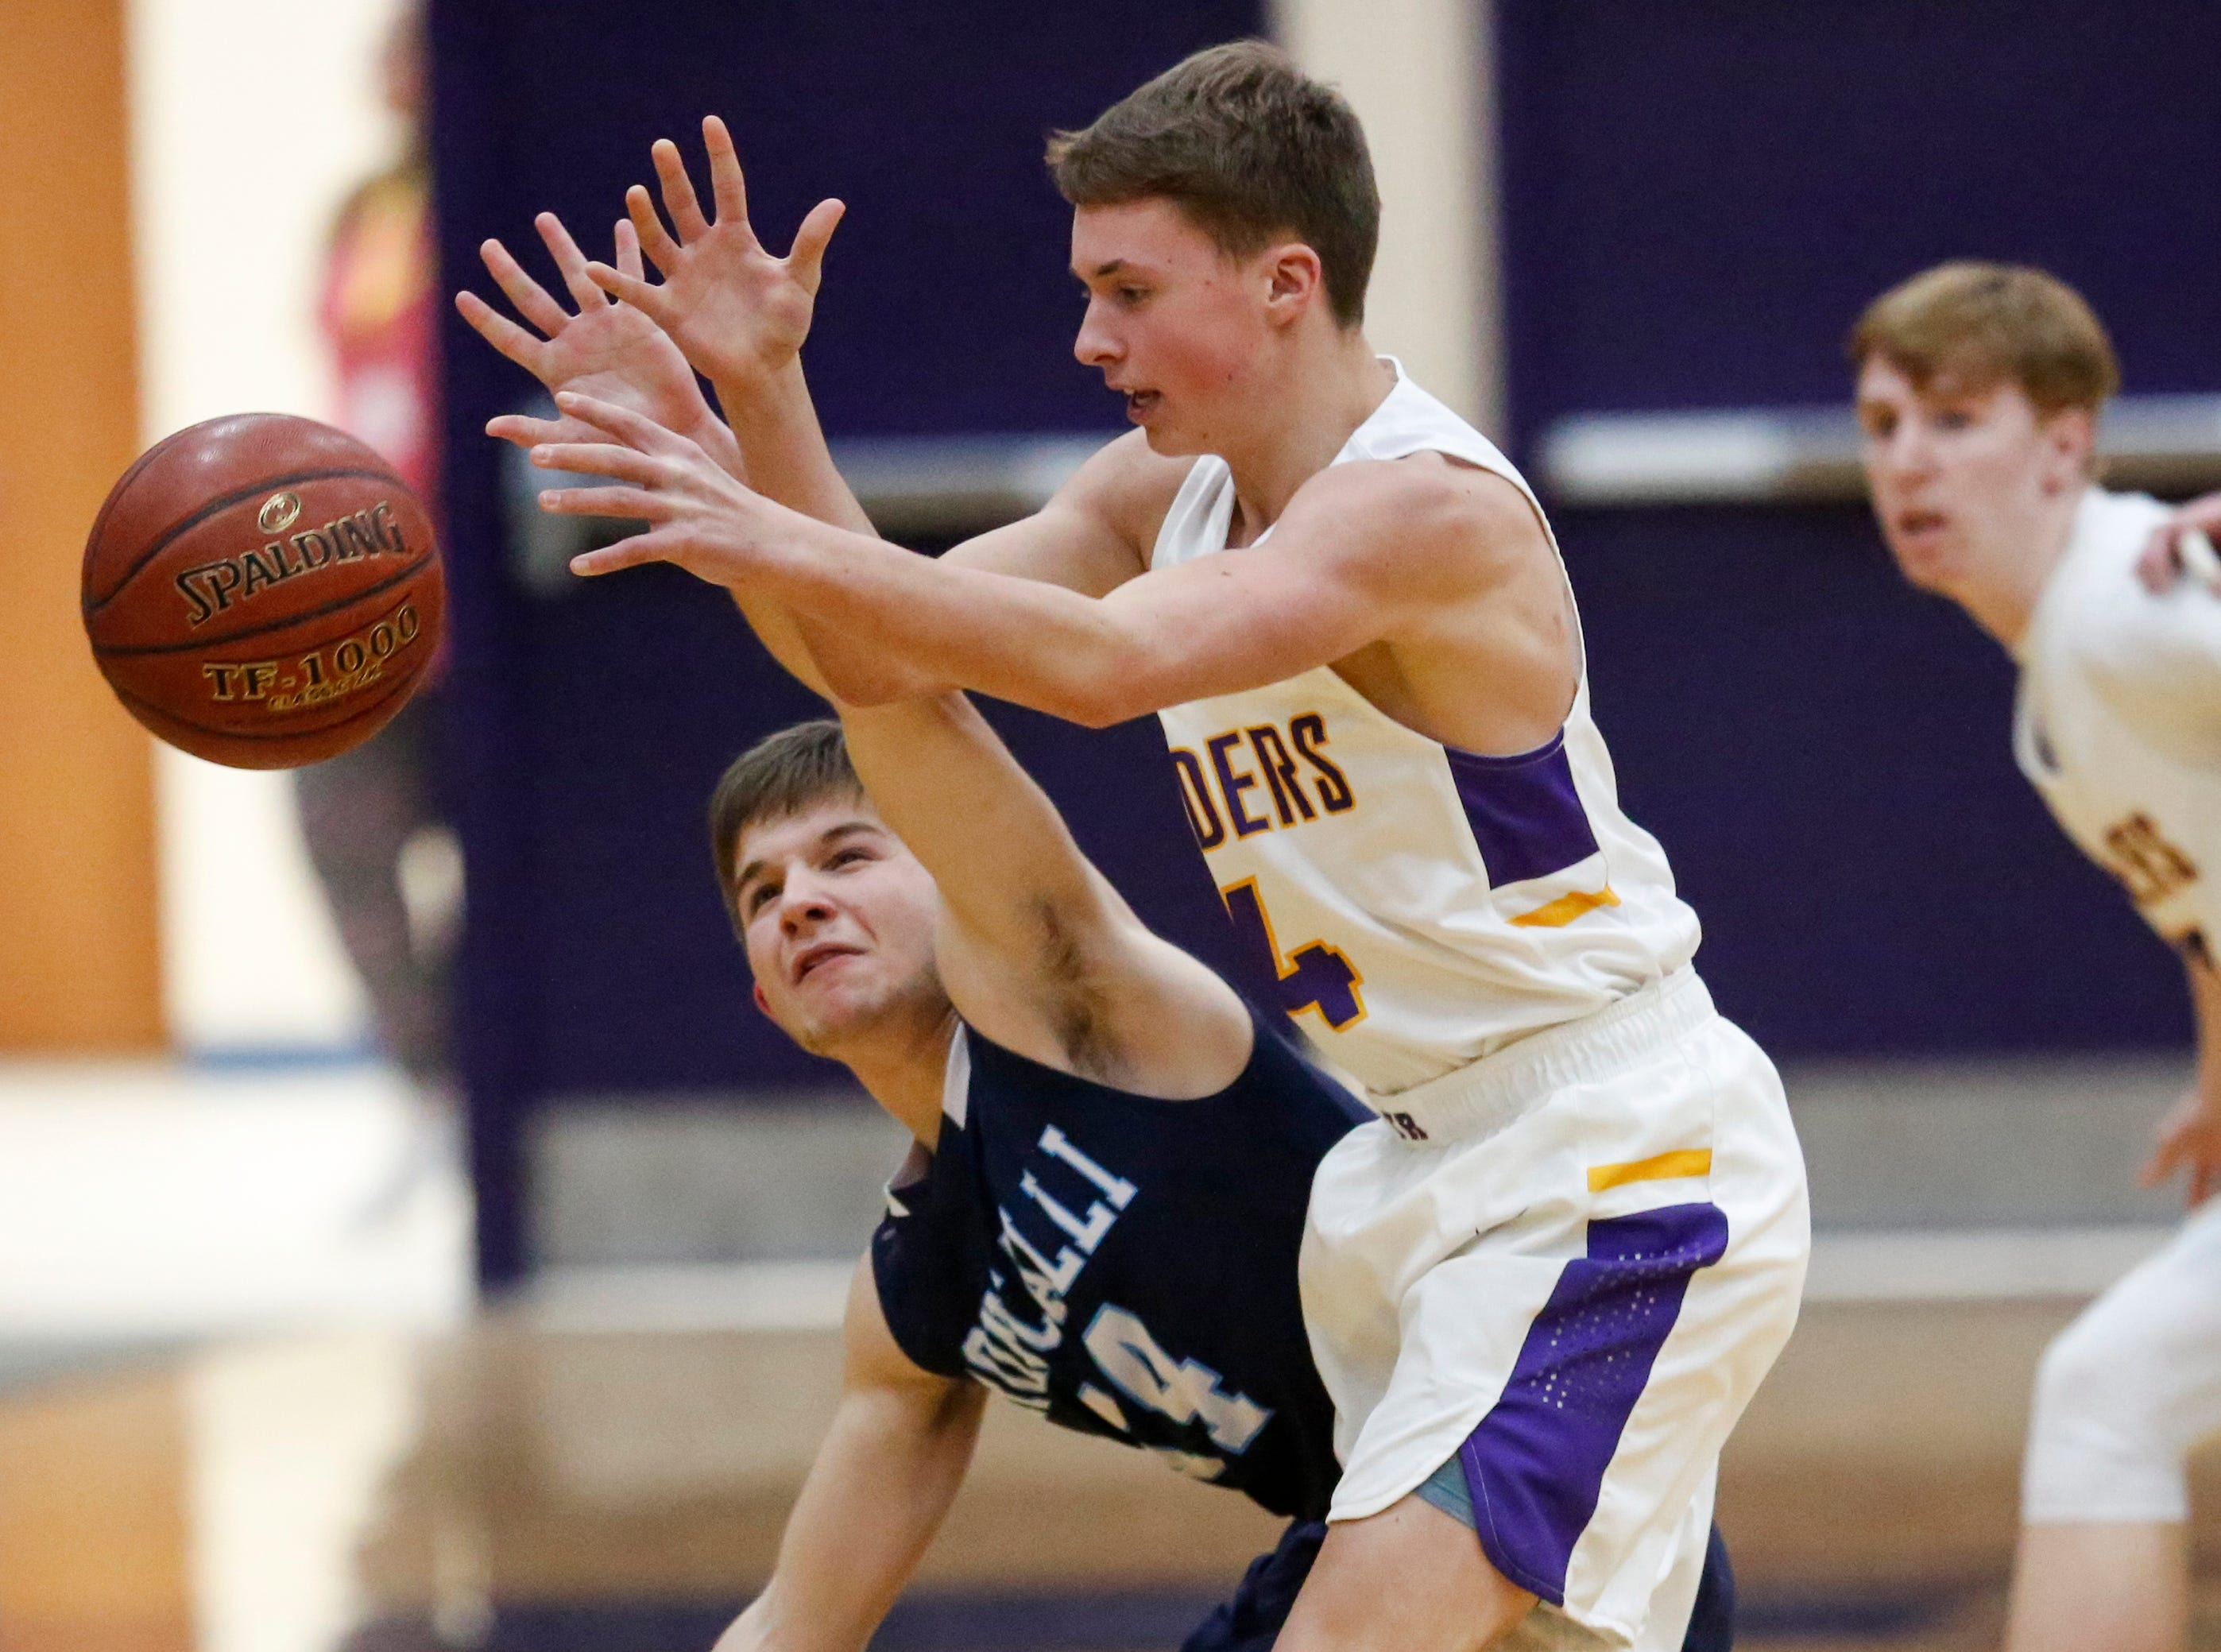 Roncalli's Ethan Jagemann (14) knocks the ball away from Two Rivers' Braden Schroeder (4) at Two Rivers High School Friday, February 1, 2019, in Two Rivers, Wis. Joshua Clark/USA TODAY NETWORK-Wisconsin